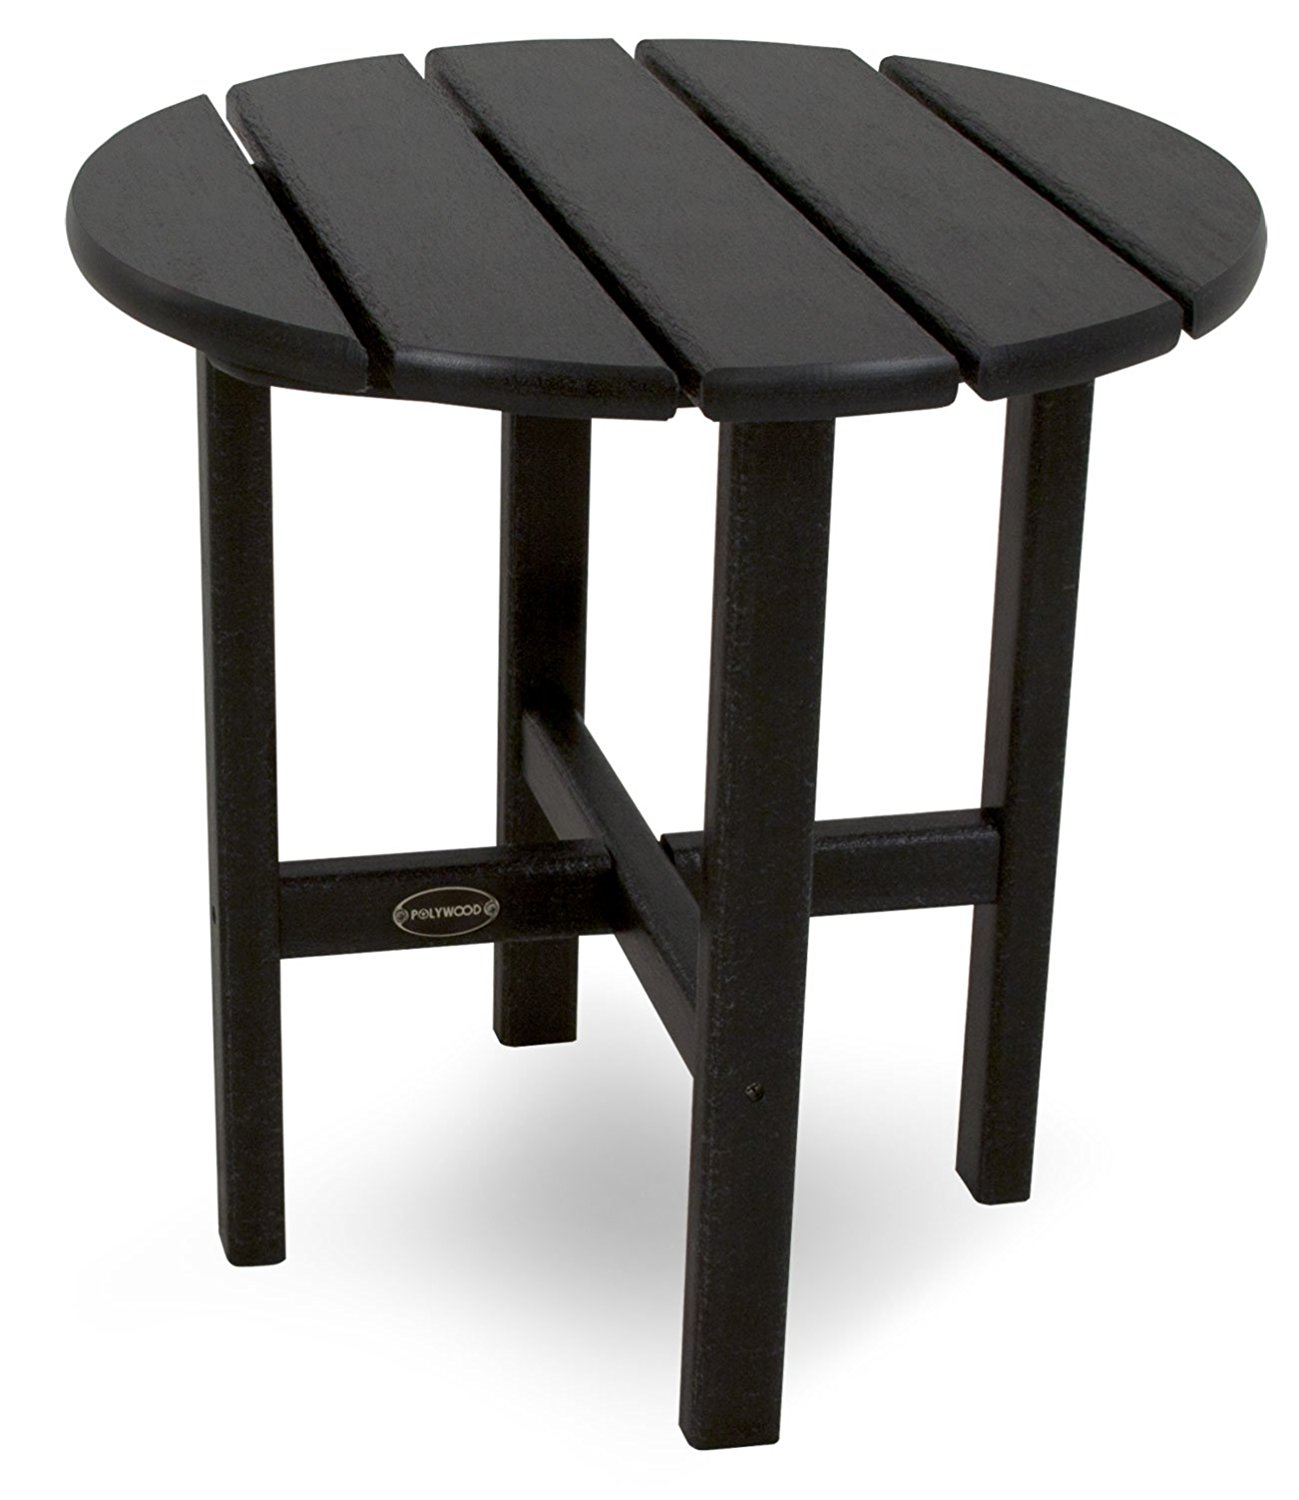 shelf side table the super free target black livingroom patio inspiring tables wood crosley metal retro white furniture small wicker with umbrella hole polywood round ikea glass